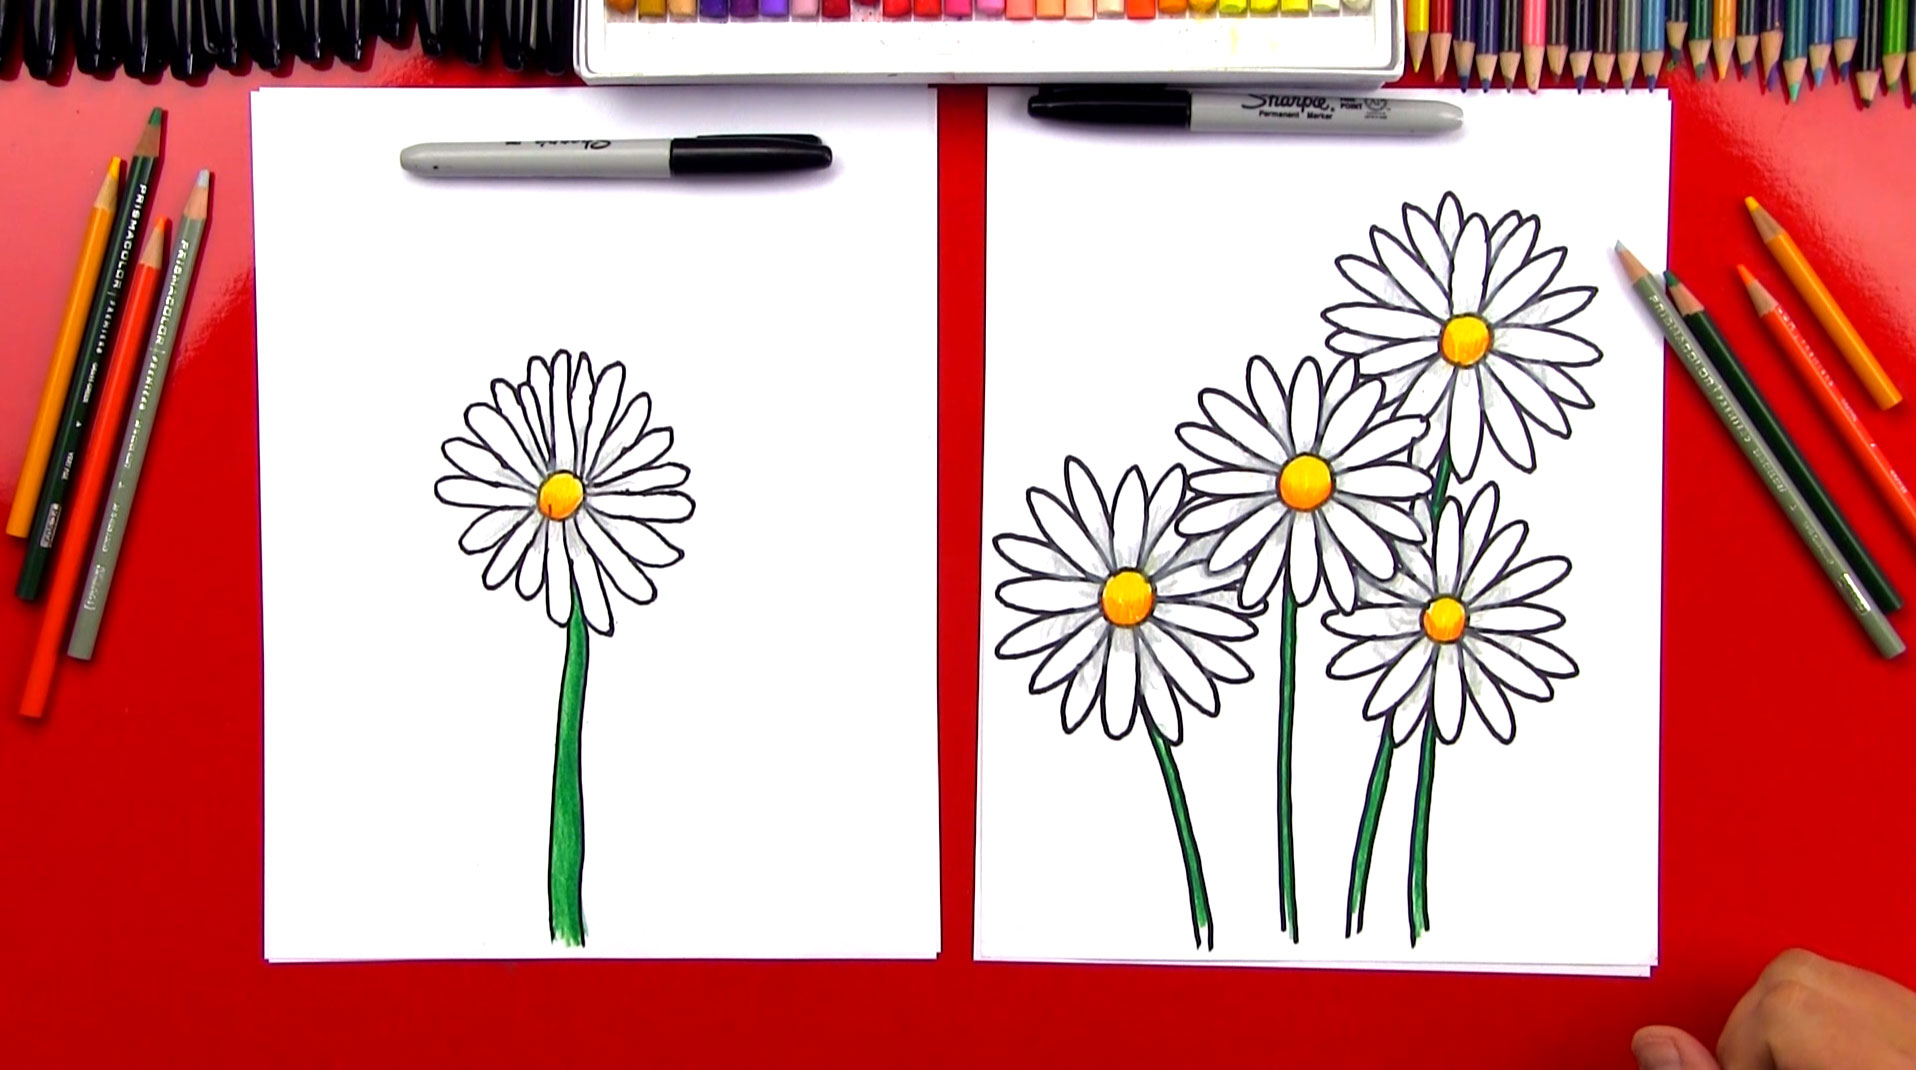 How To Draw A Daisy Flower - Art For Kids Hub -